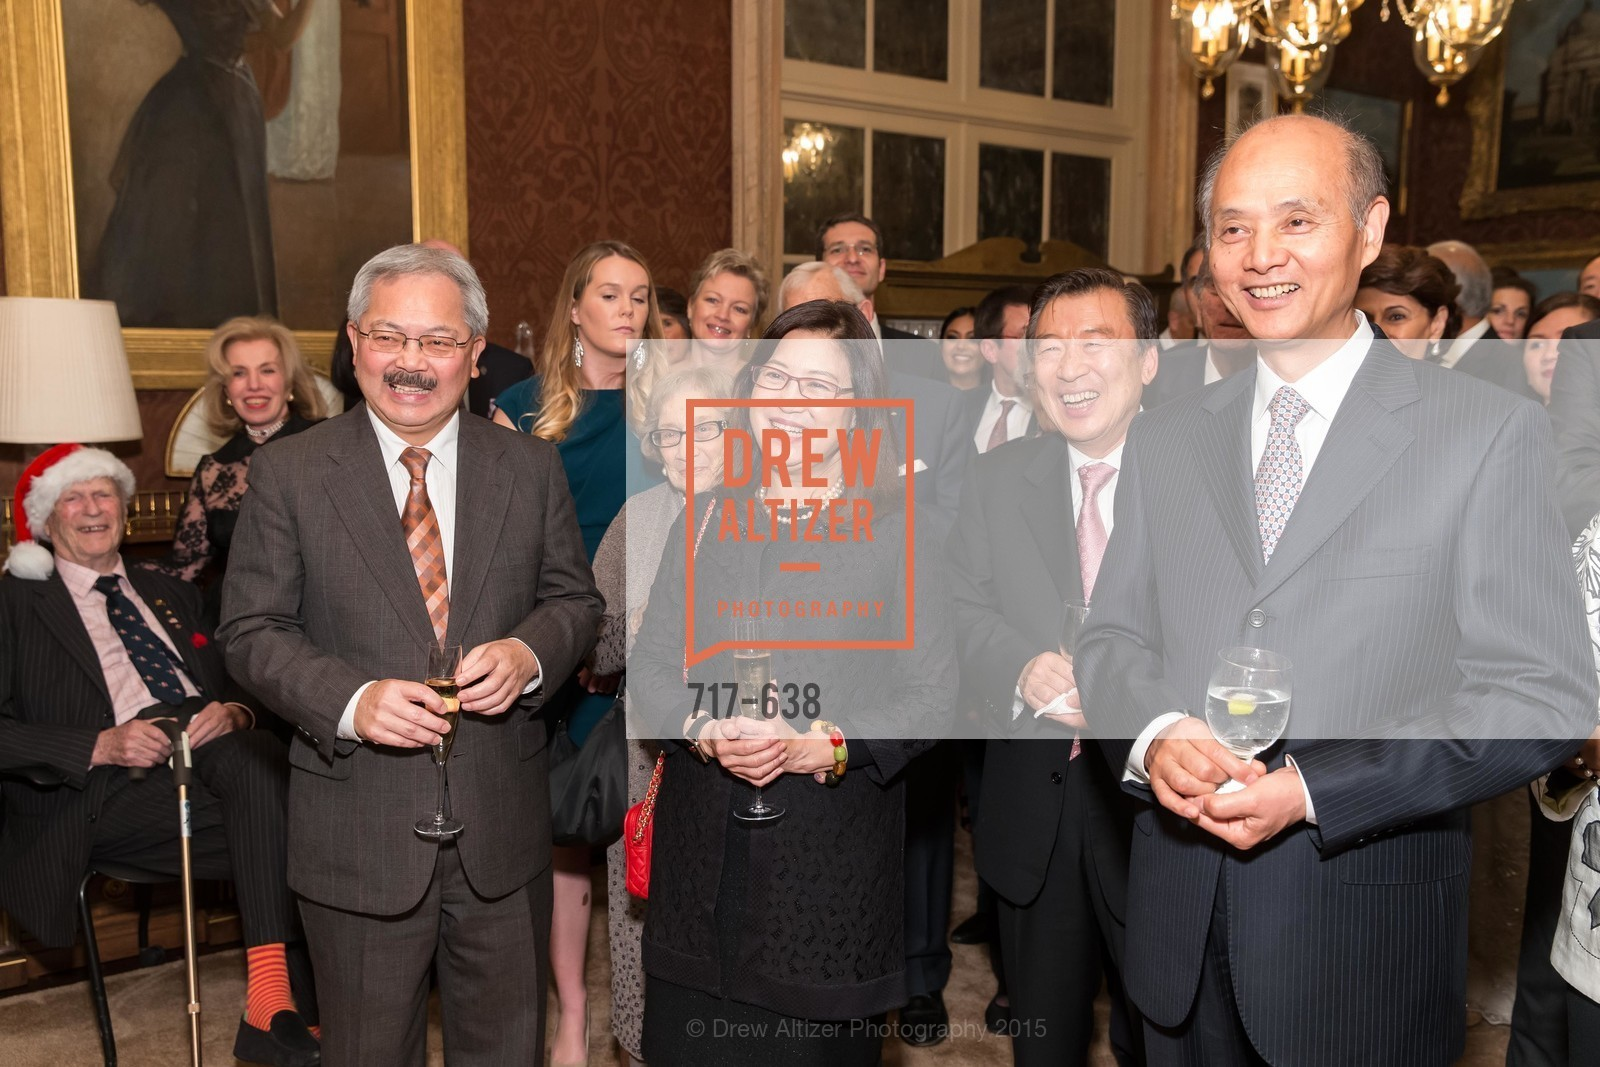 Ed Lee, Anita Lee, Luolin Quan, San Francisco Mayor's Office of Protocol Christmas Party, Private Residence, December 9th, 2015,Drew Altizer, Drew Altizer Photography, full-service agency, private events, San Francisco photographer, photographer california